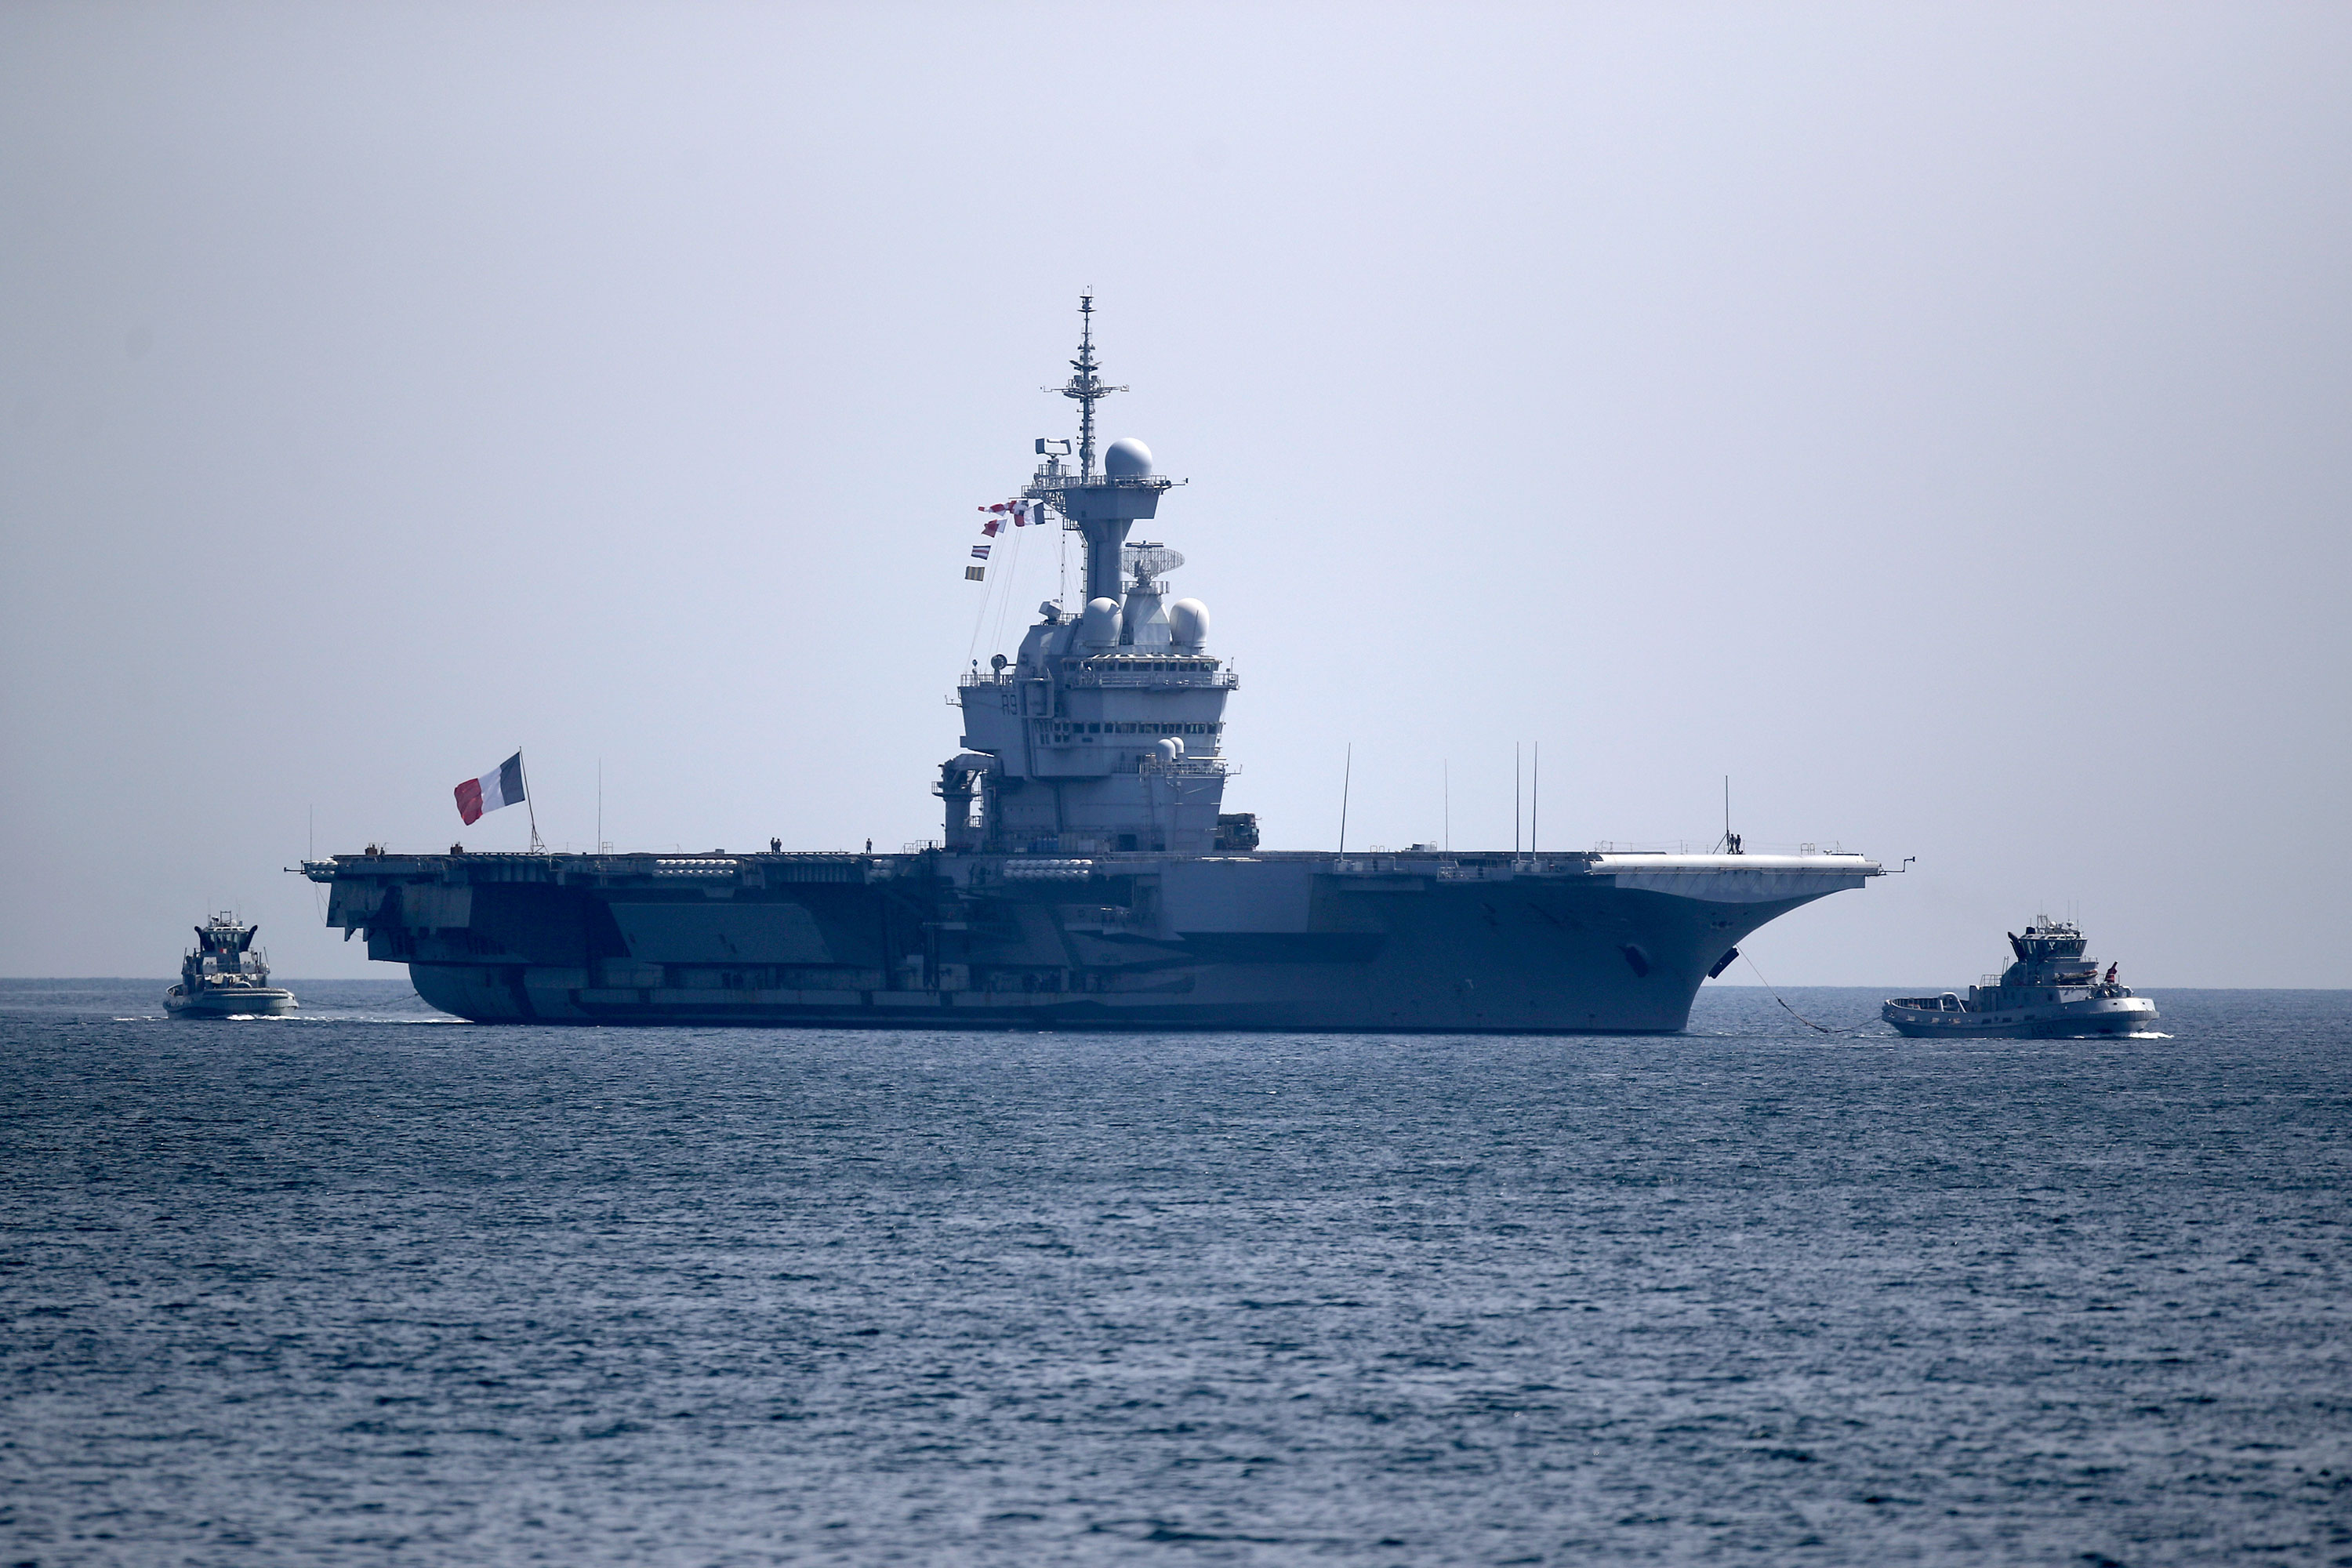 The French aircraft carrier Charles de Gaulle arrives in the bay of Toulon, France, on April 12.